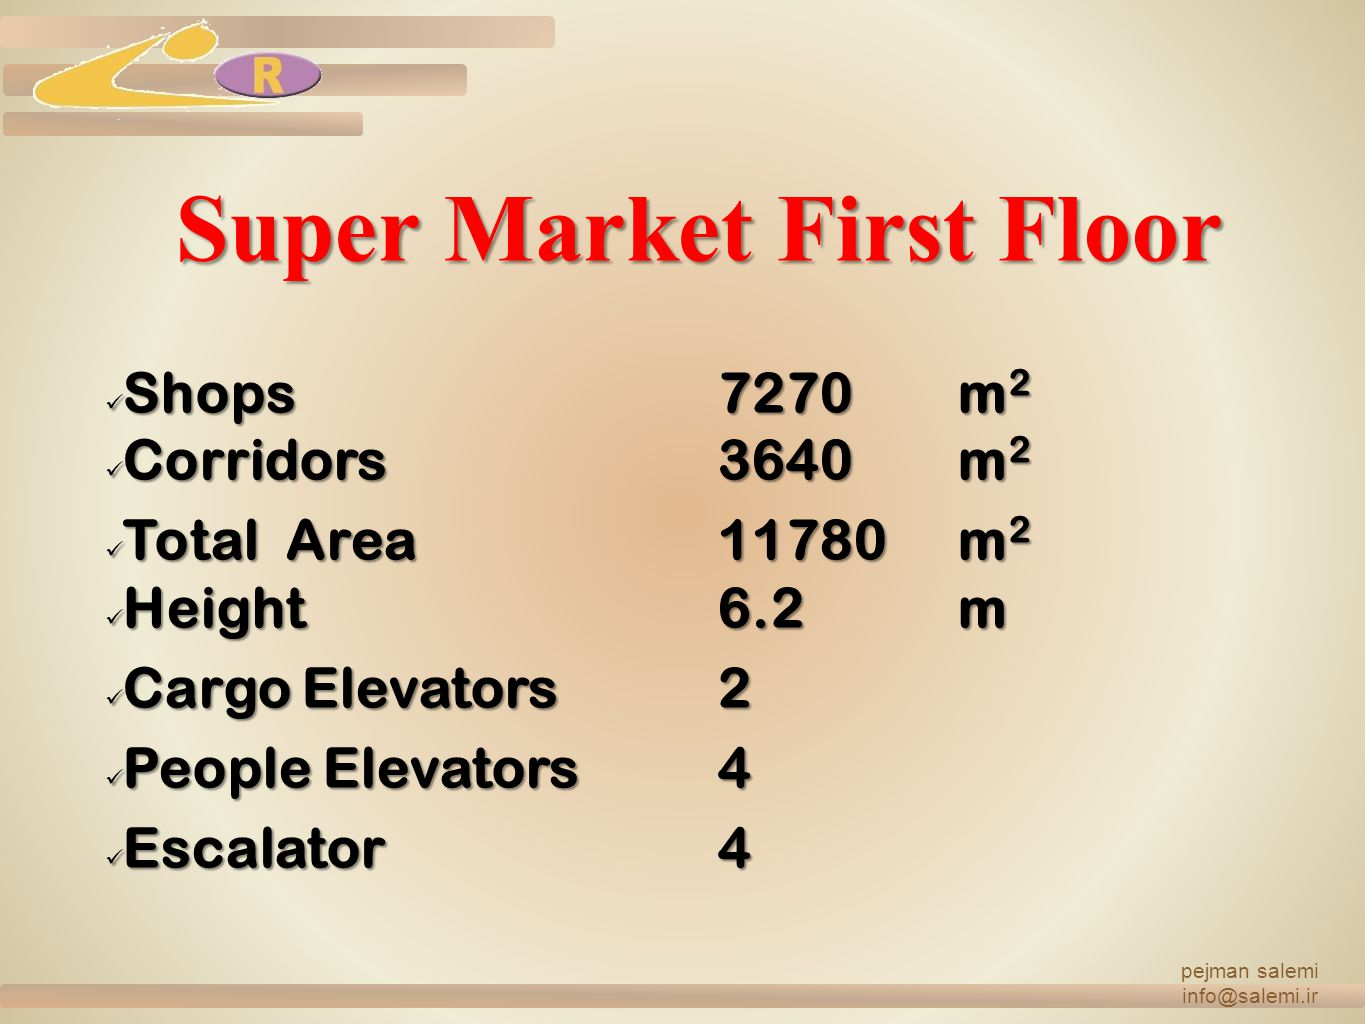 Super Market First Floor